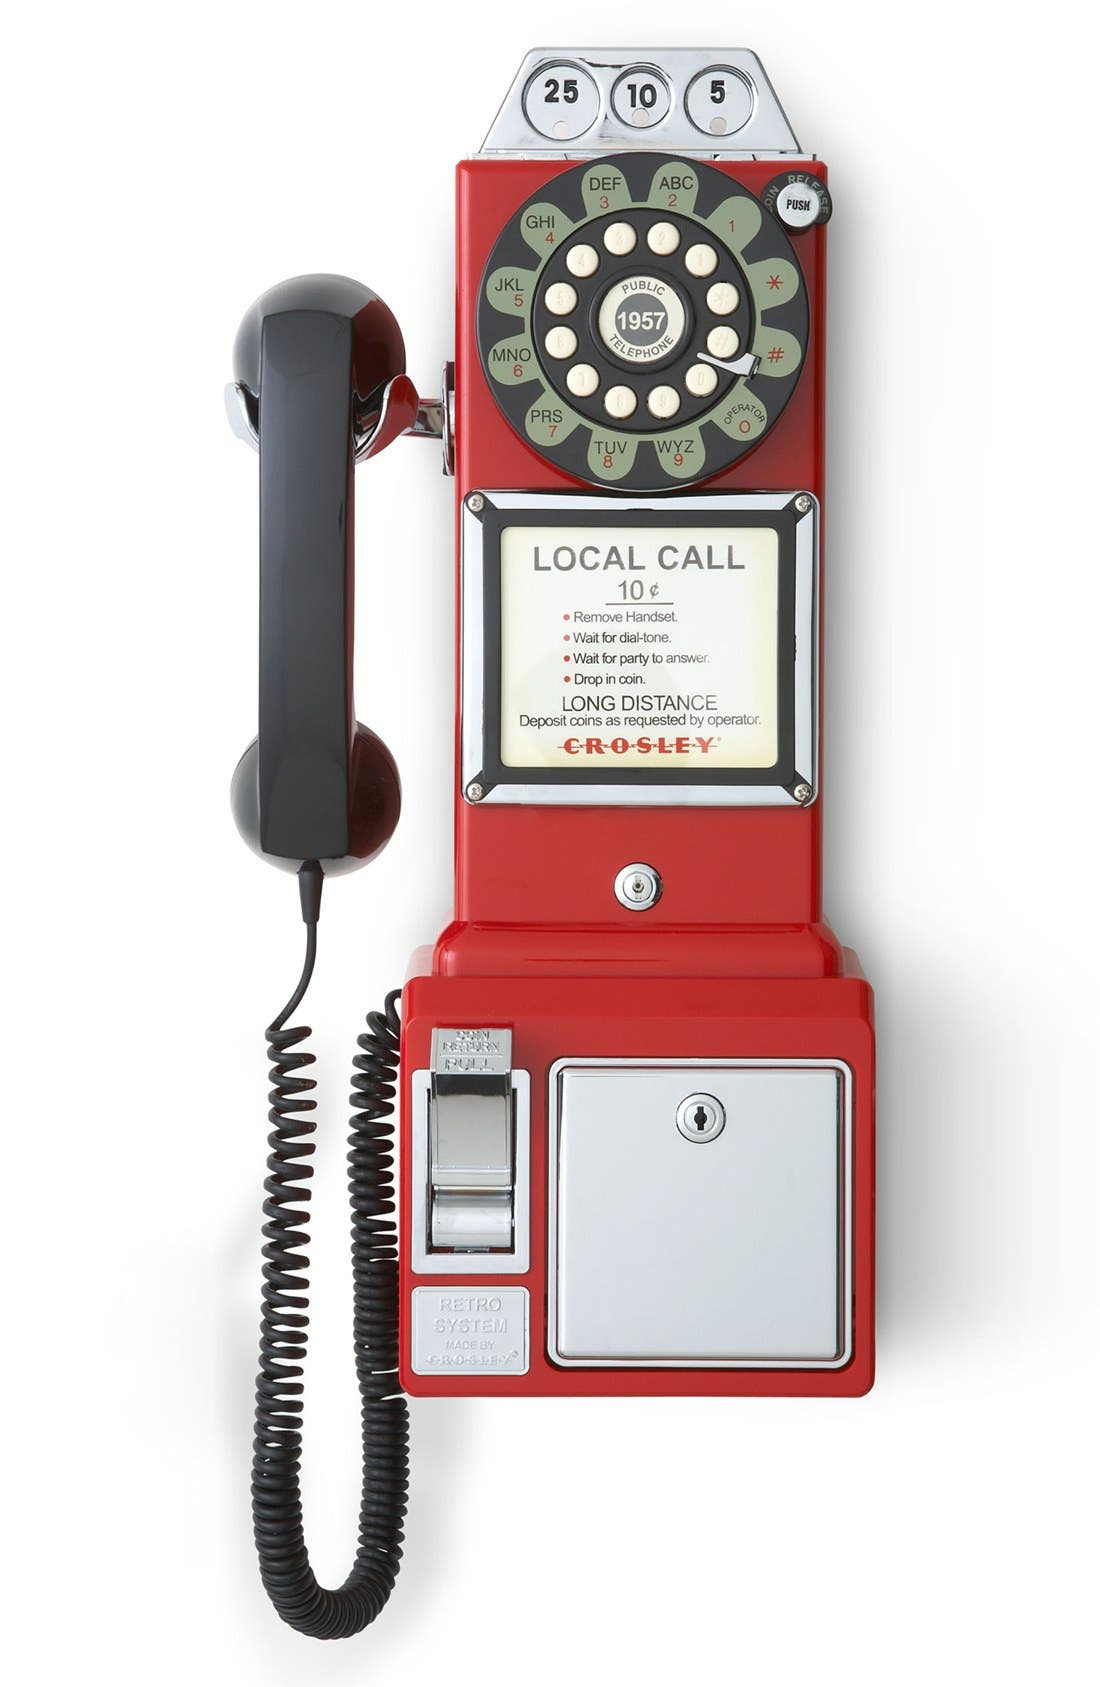 Alternate Image 1 Selected - Crosley Radio 'Pay Phone' Wall Phone